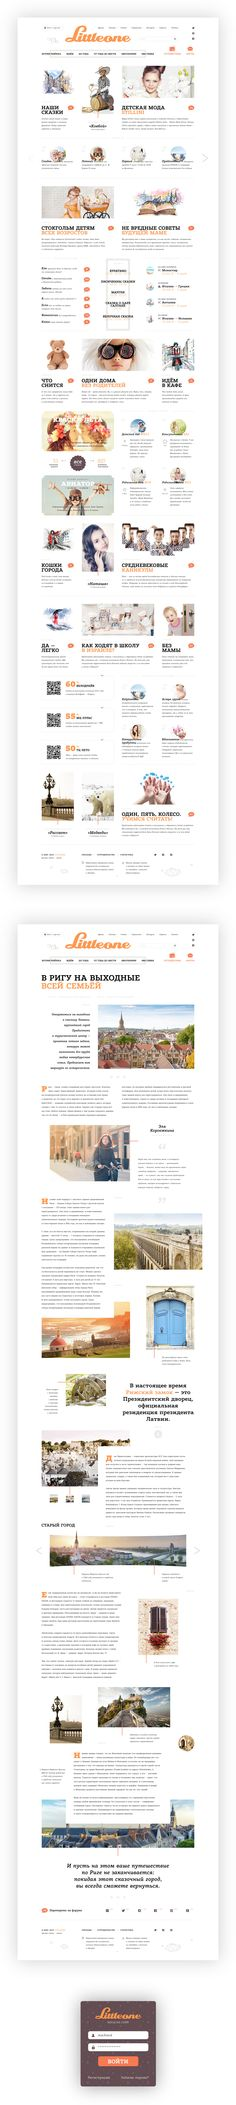 Littleone on Behance